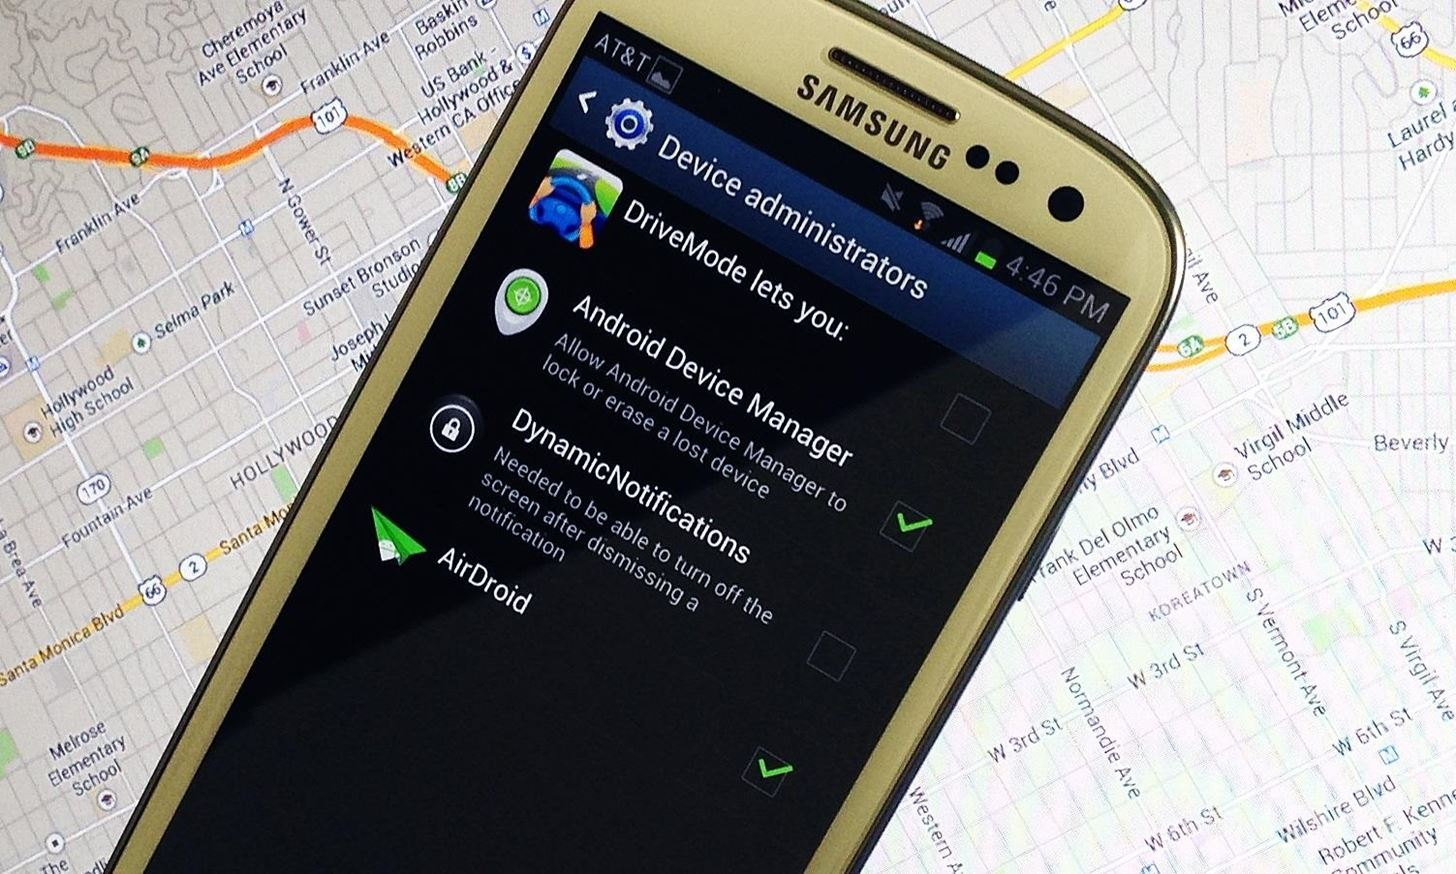 Find Manager how to use android device manager to find, wipe, & lock your